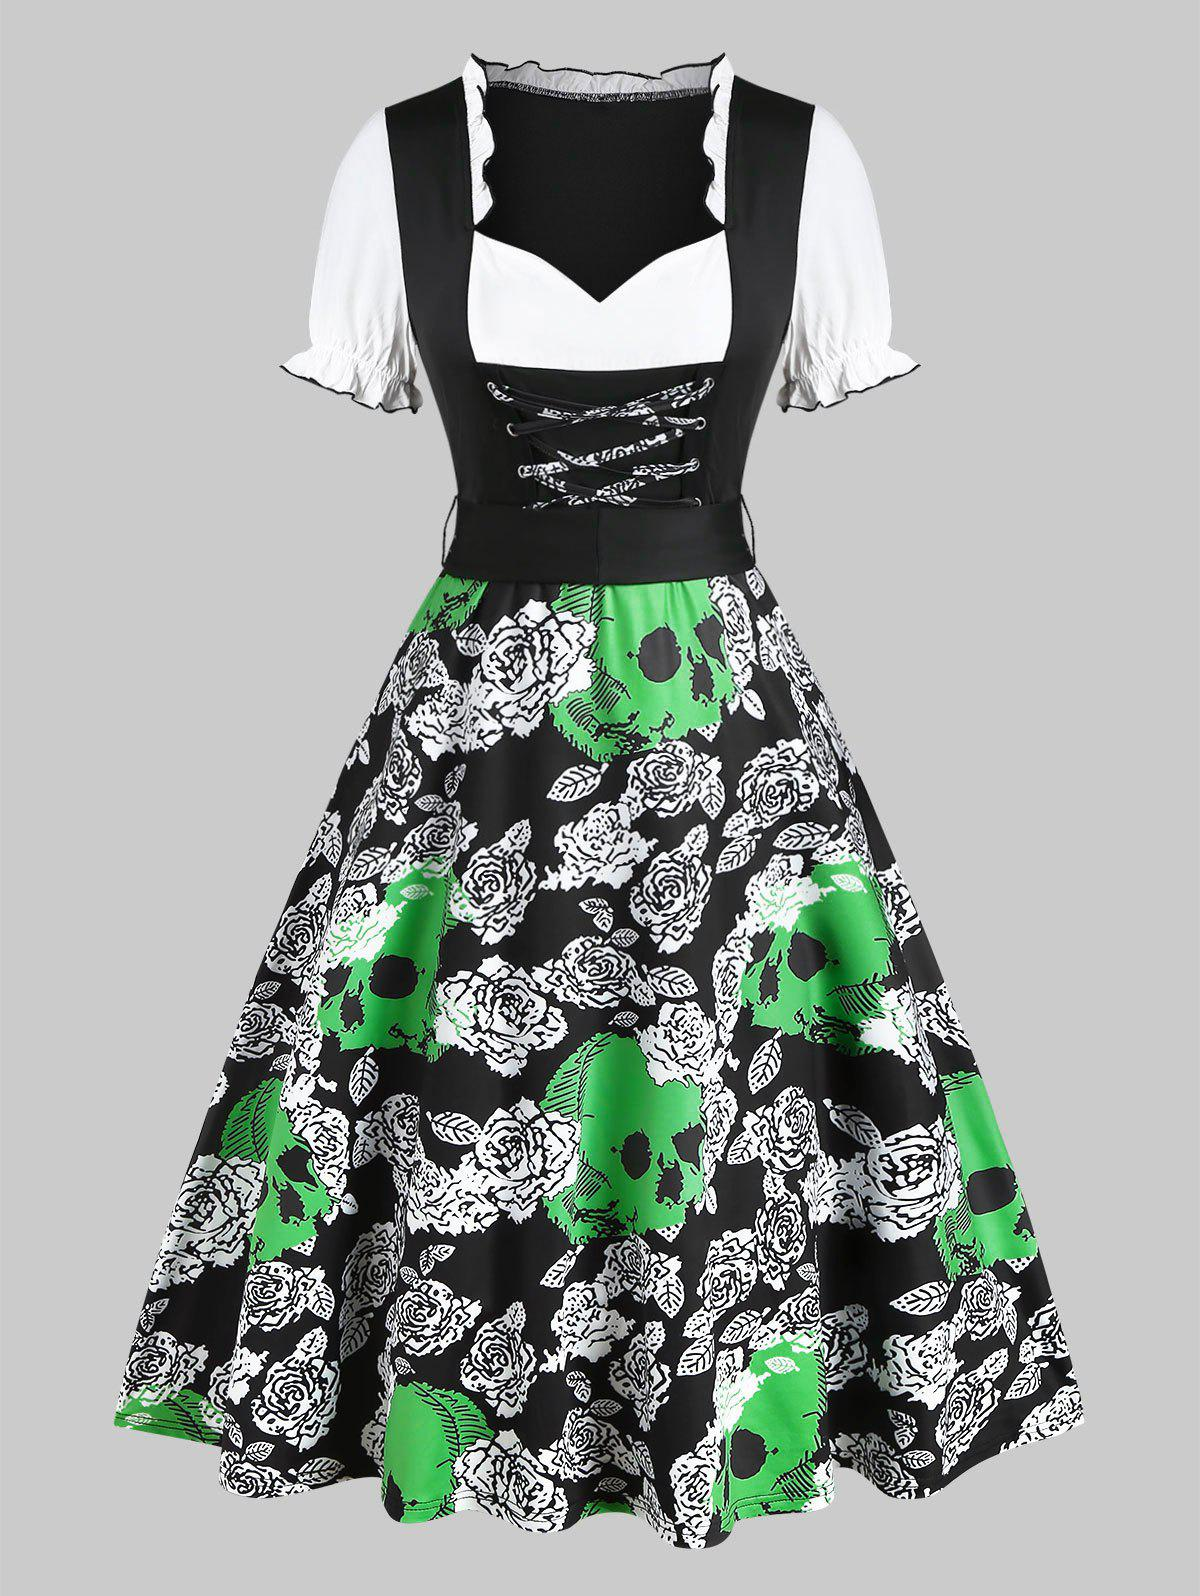 Hot Floral Skull Print Lace Up Dirndl Dress